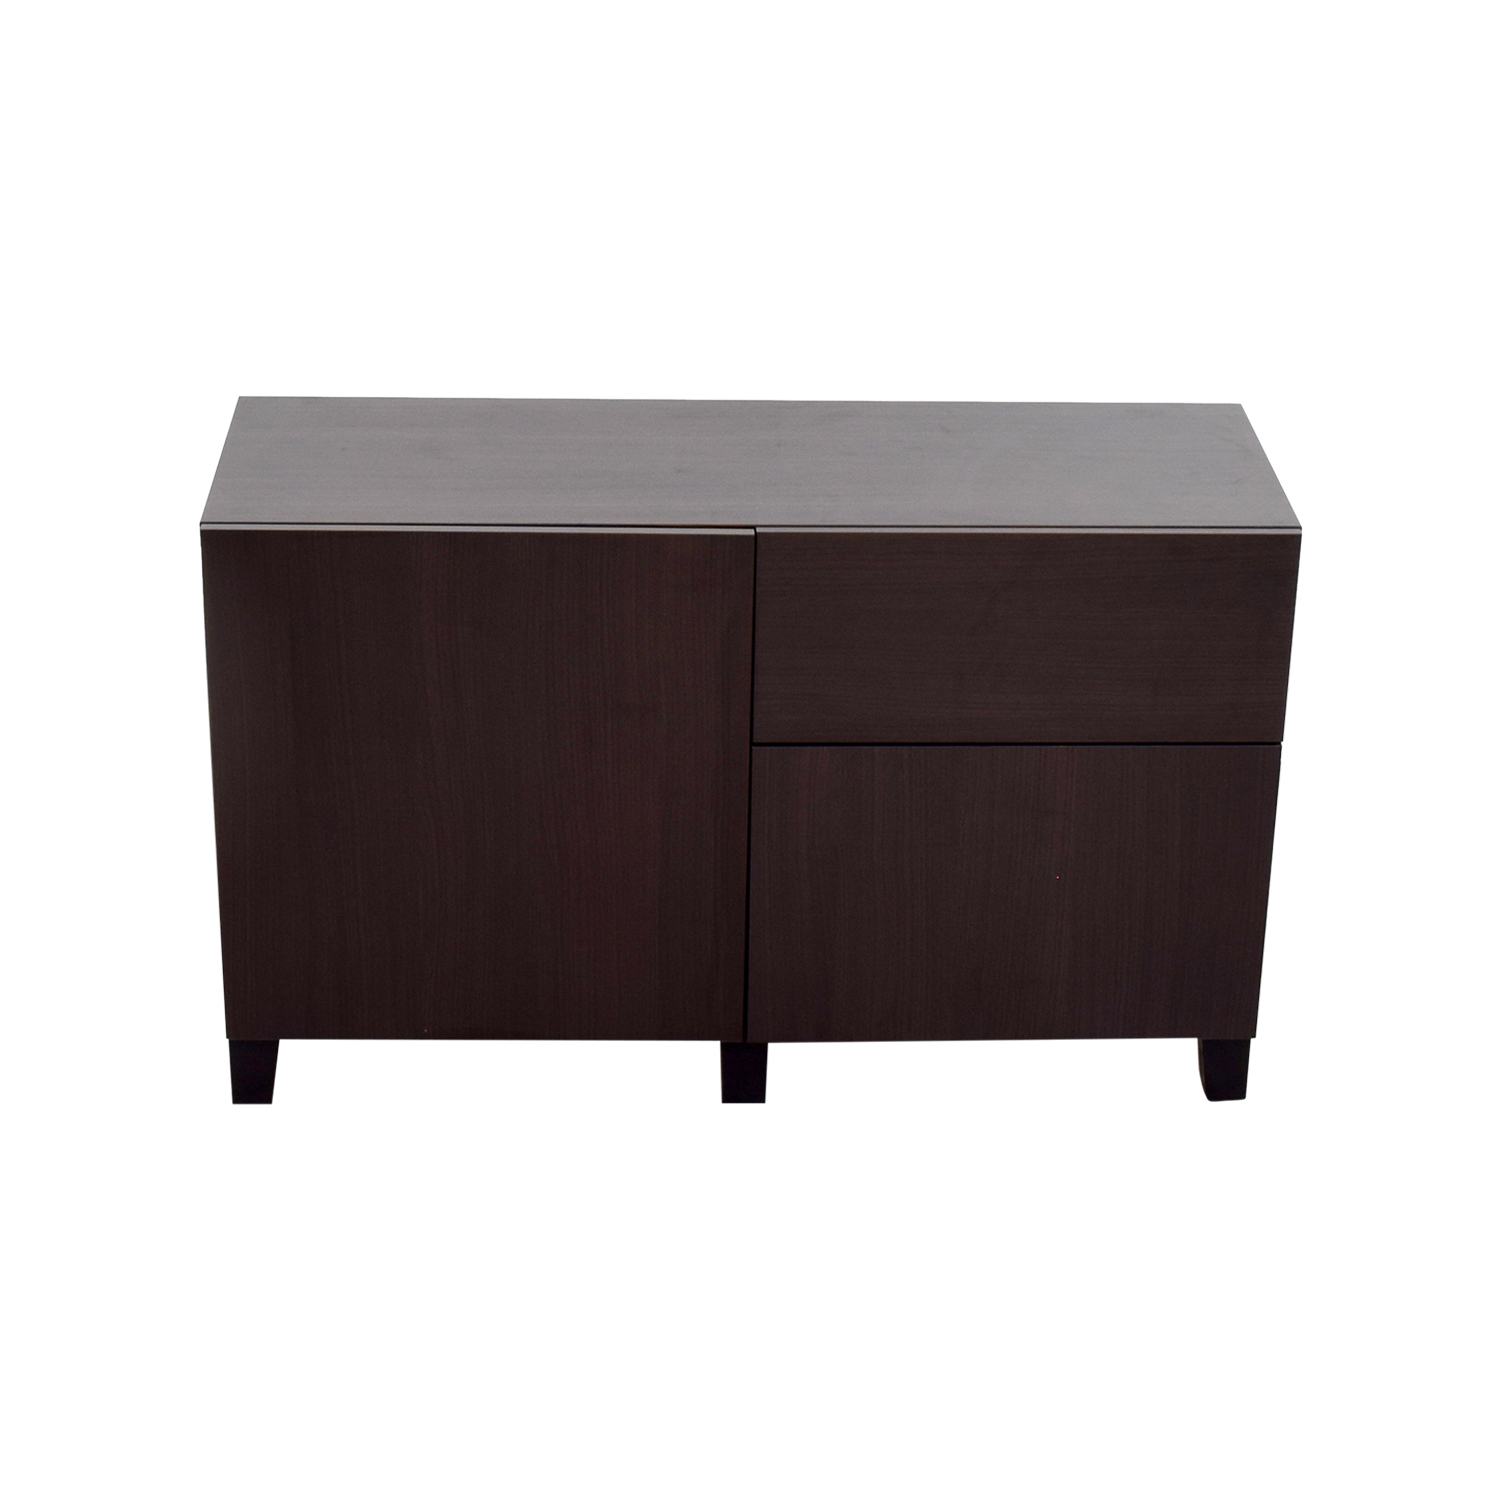 IKEA IKEA Dark Brown Storage Sideboard